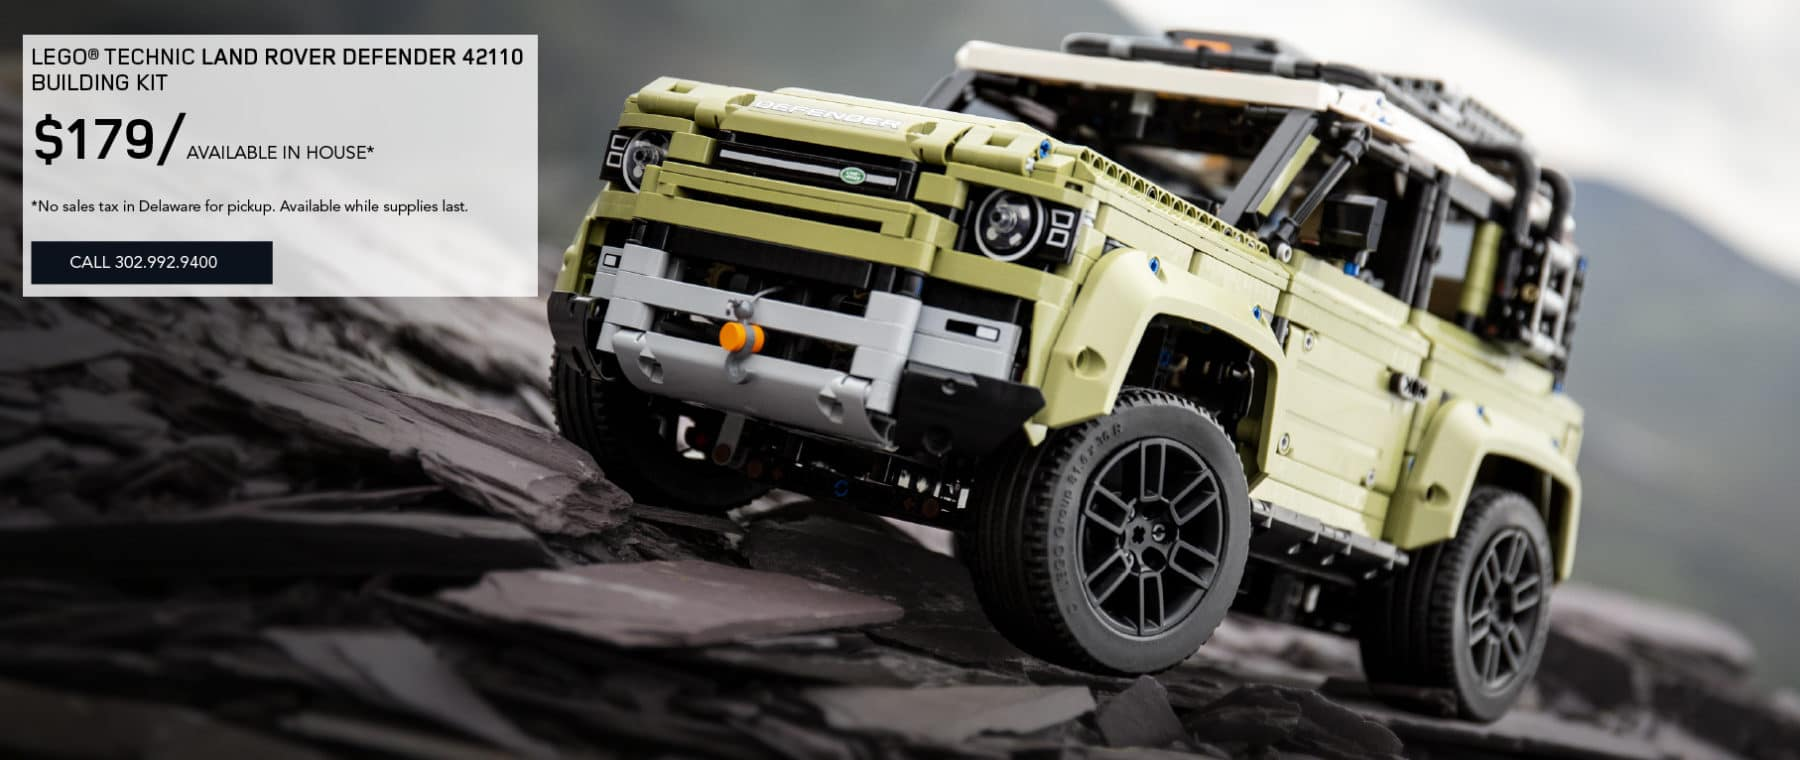 LEGO® TECHNIC LAND ROVER DEFENDER 42110 BUILDING KIT. $179 AVAILABLE IN HOUSE. NO SALES TAX IN DELEWARE FOR PICKUP. AVAILABLE WHILE SUPPLIES LAST. CALL 302.992.9400. GREEN LEGO TECHNIC LAND ROVER DEFENDER TOY FEATURED.